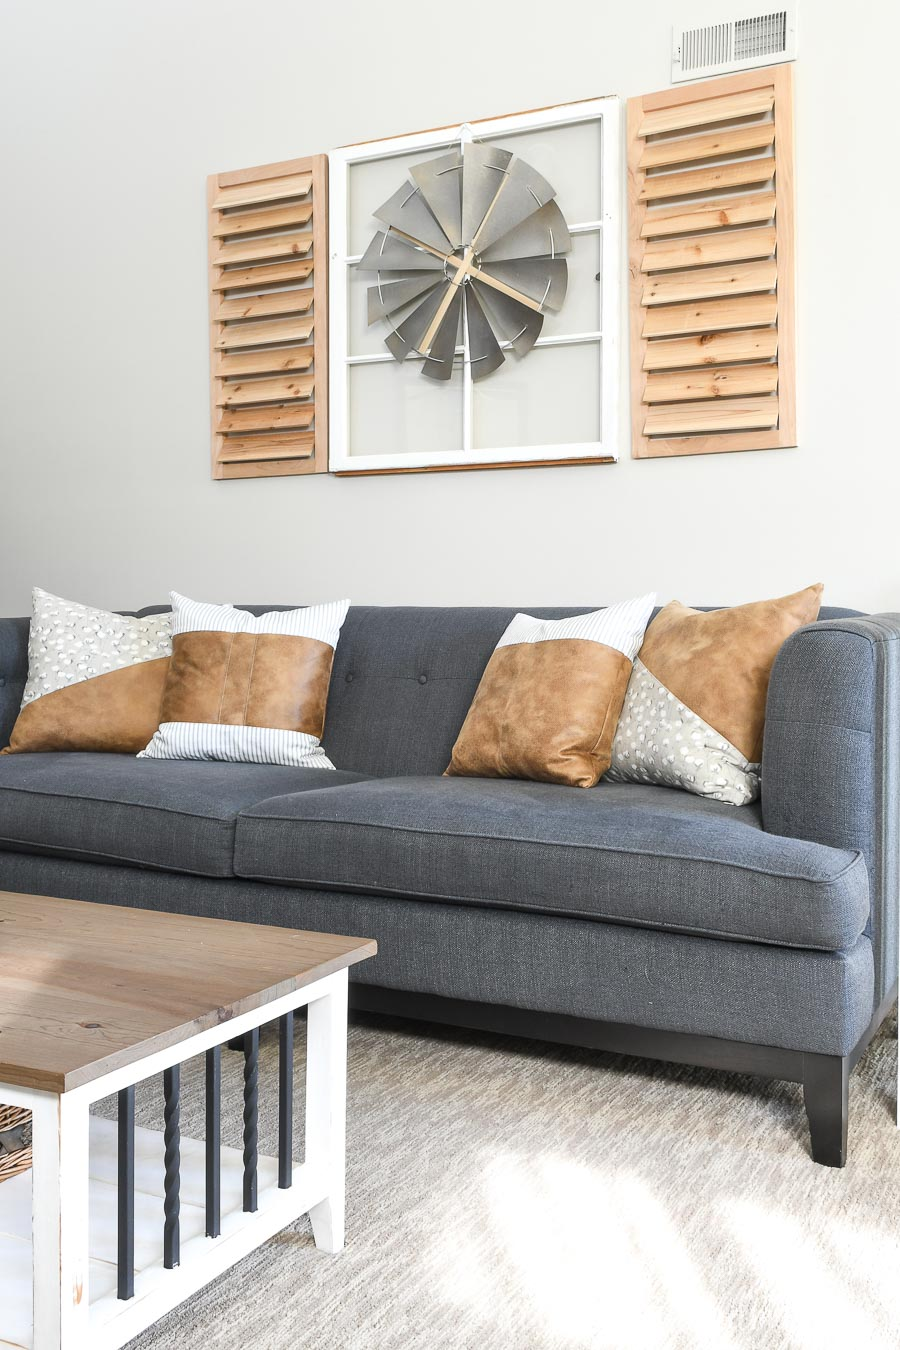 Decorative throw pillows on a couch with windmill decor above it.